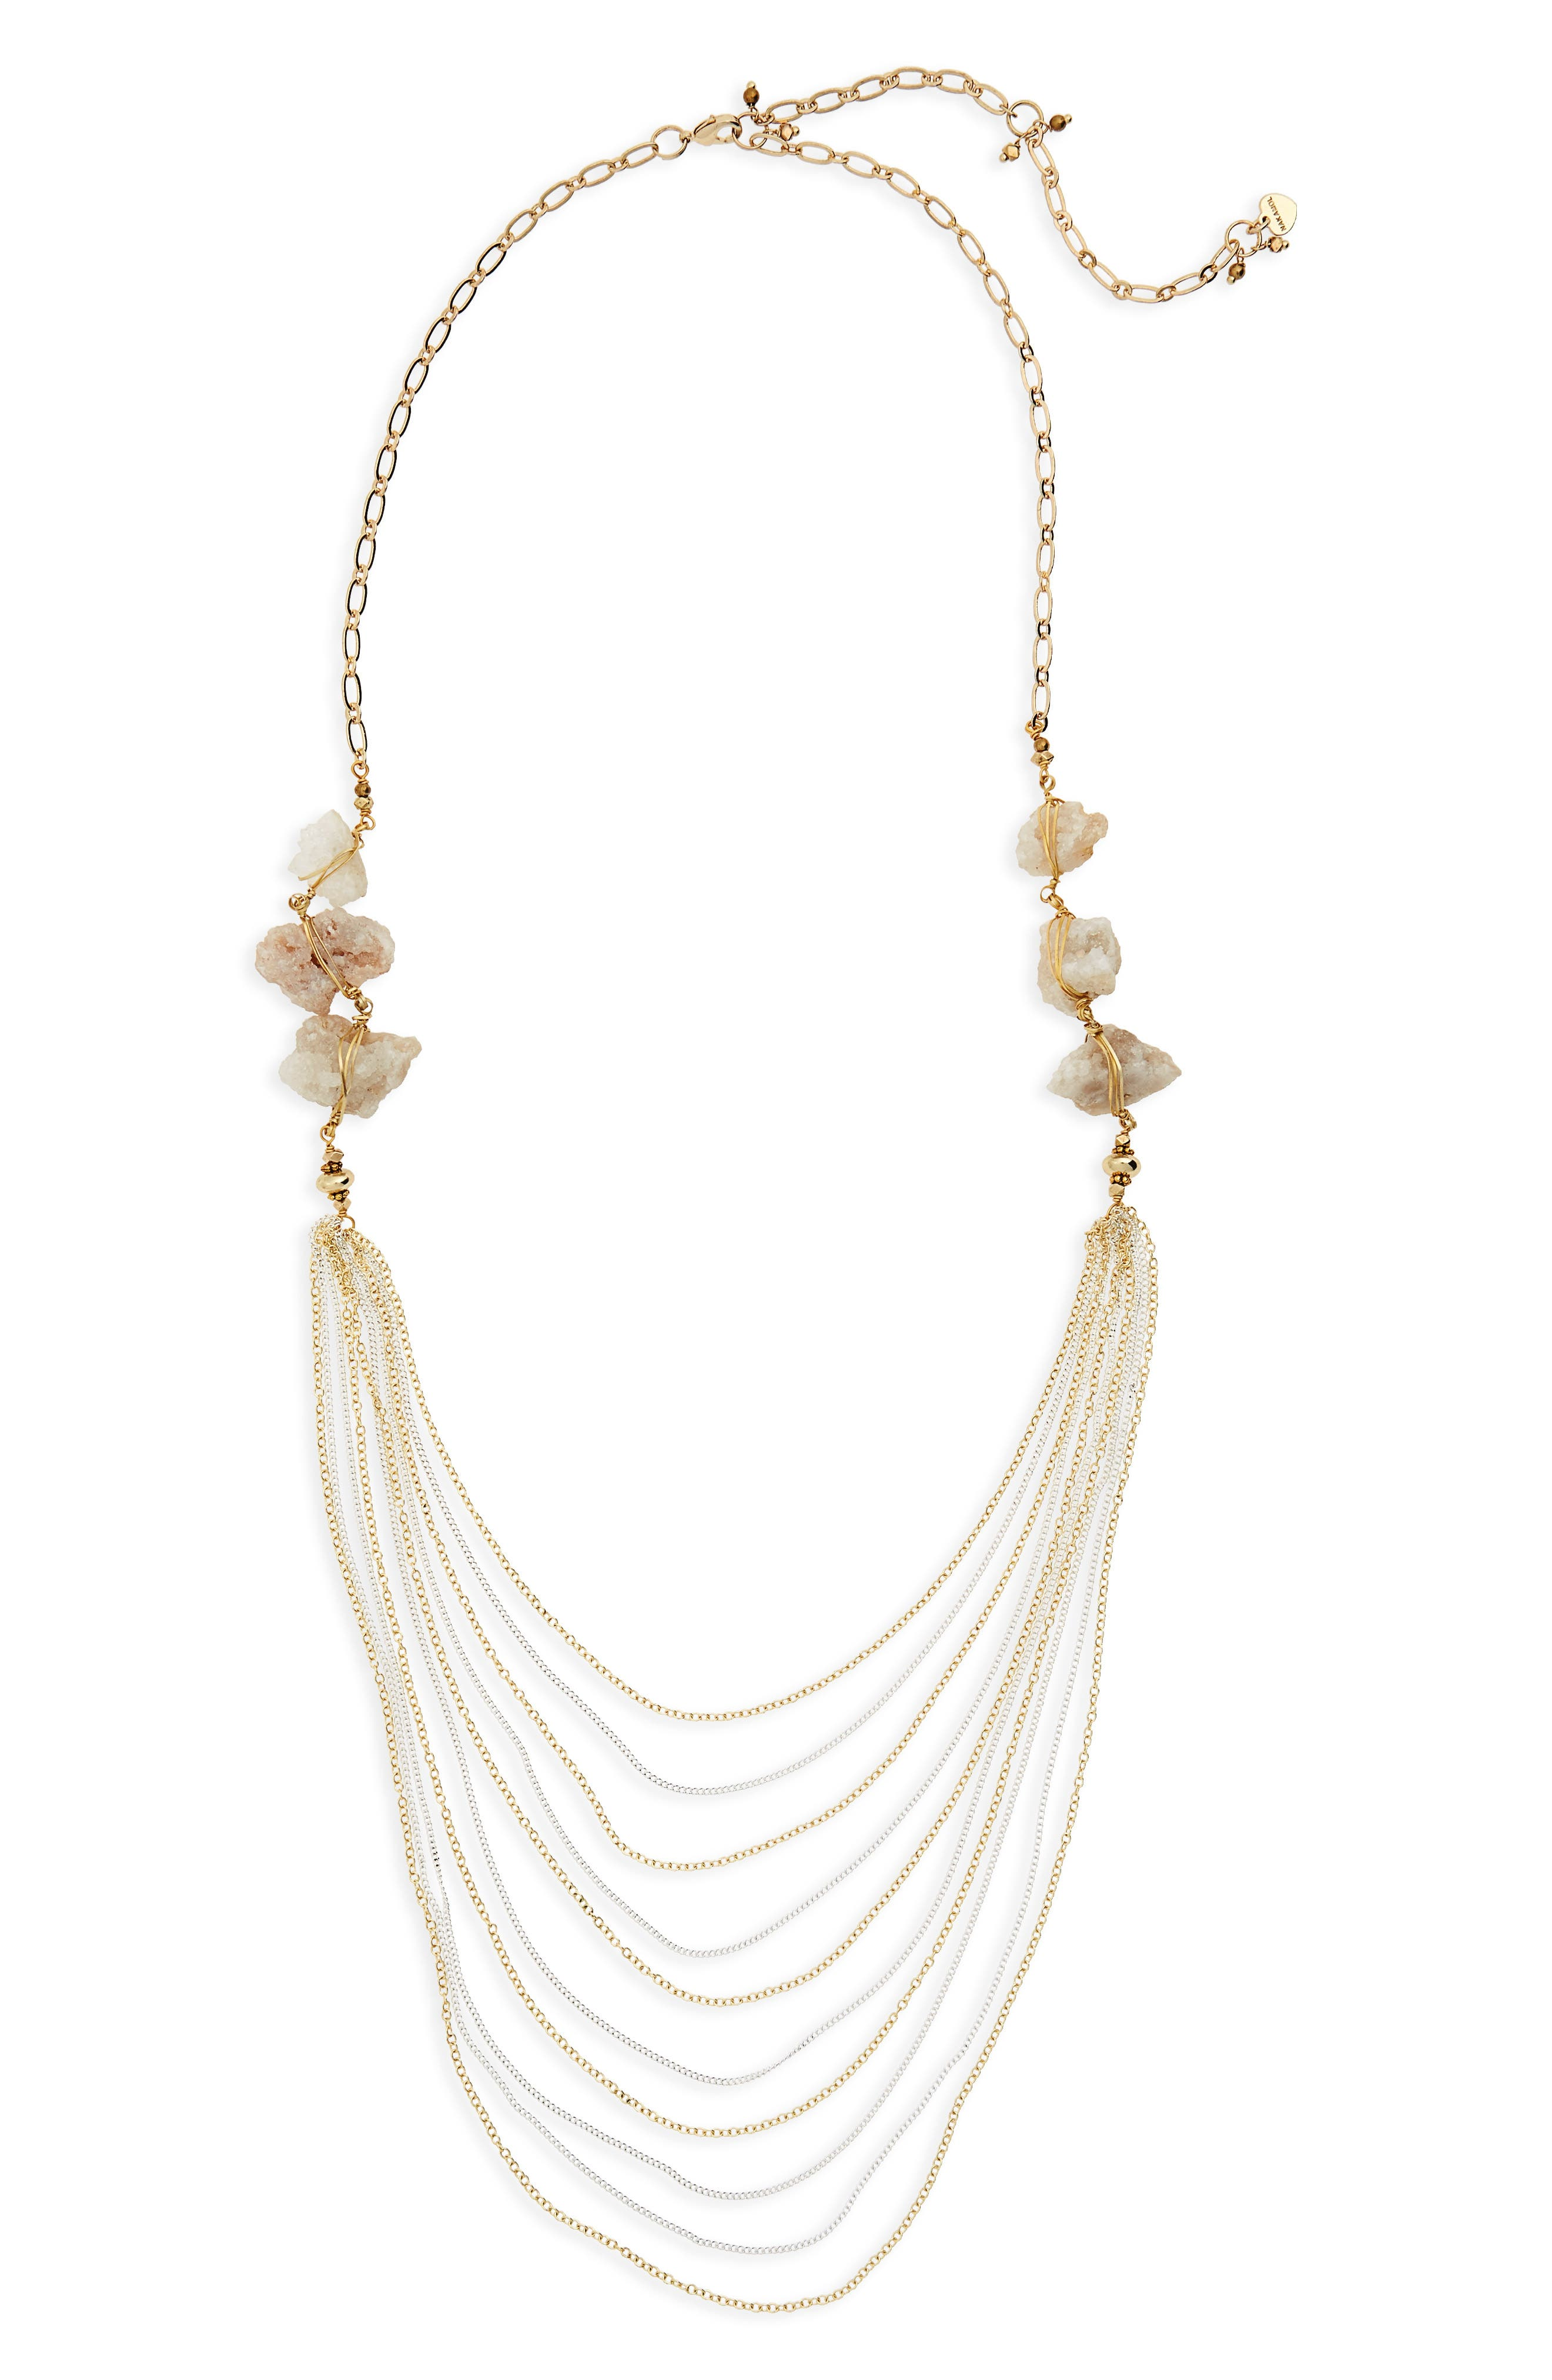 Agate Layered Chain Necklace,                         Main,                         color, Light Grey